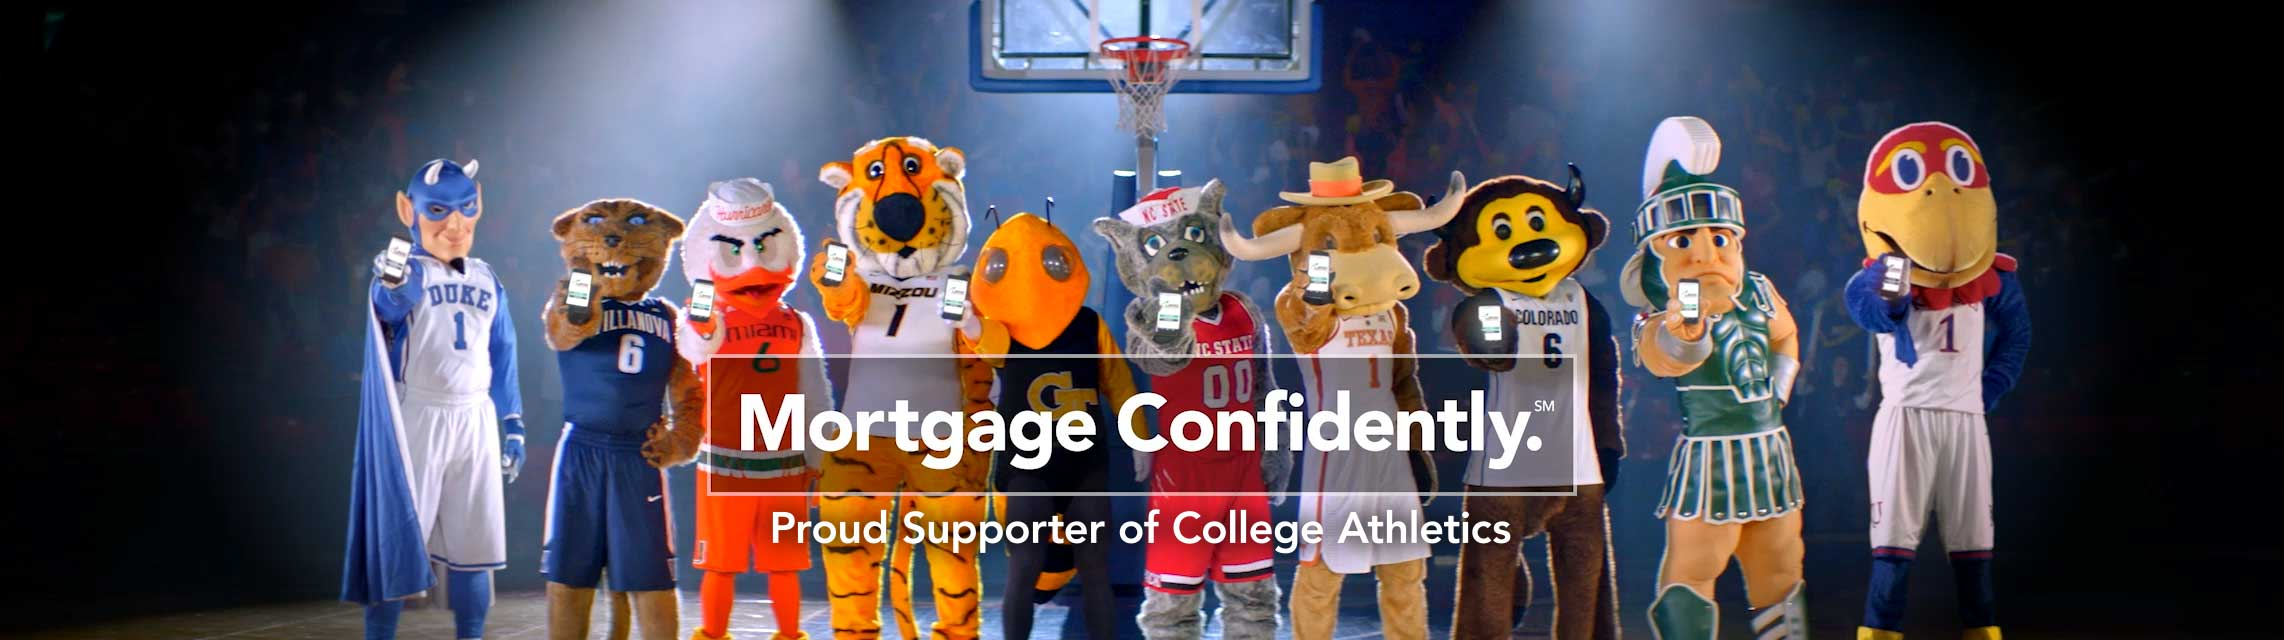 Mortgage Confidently